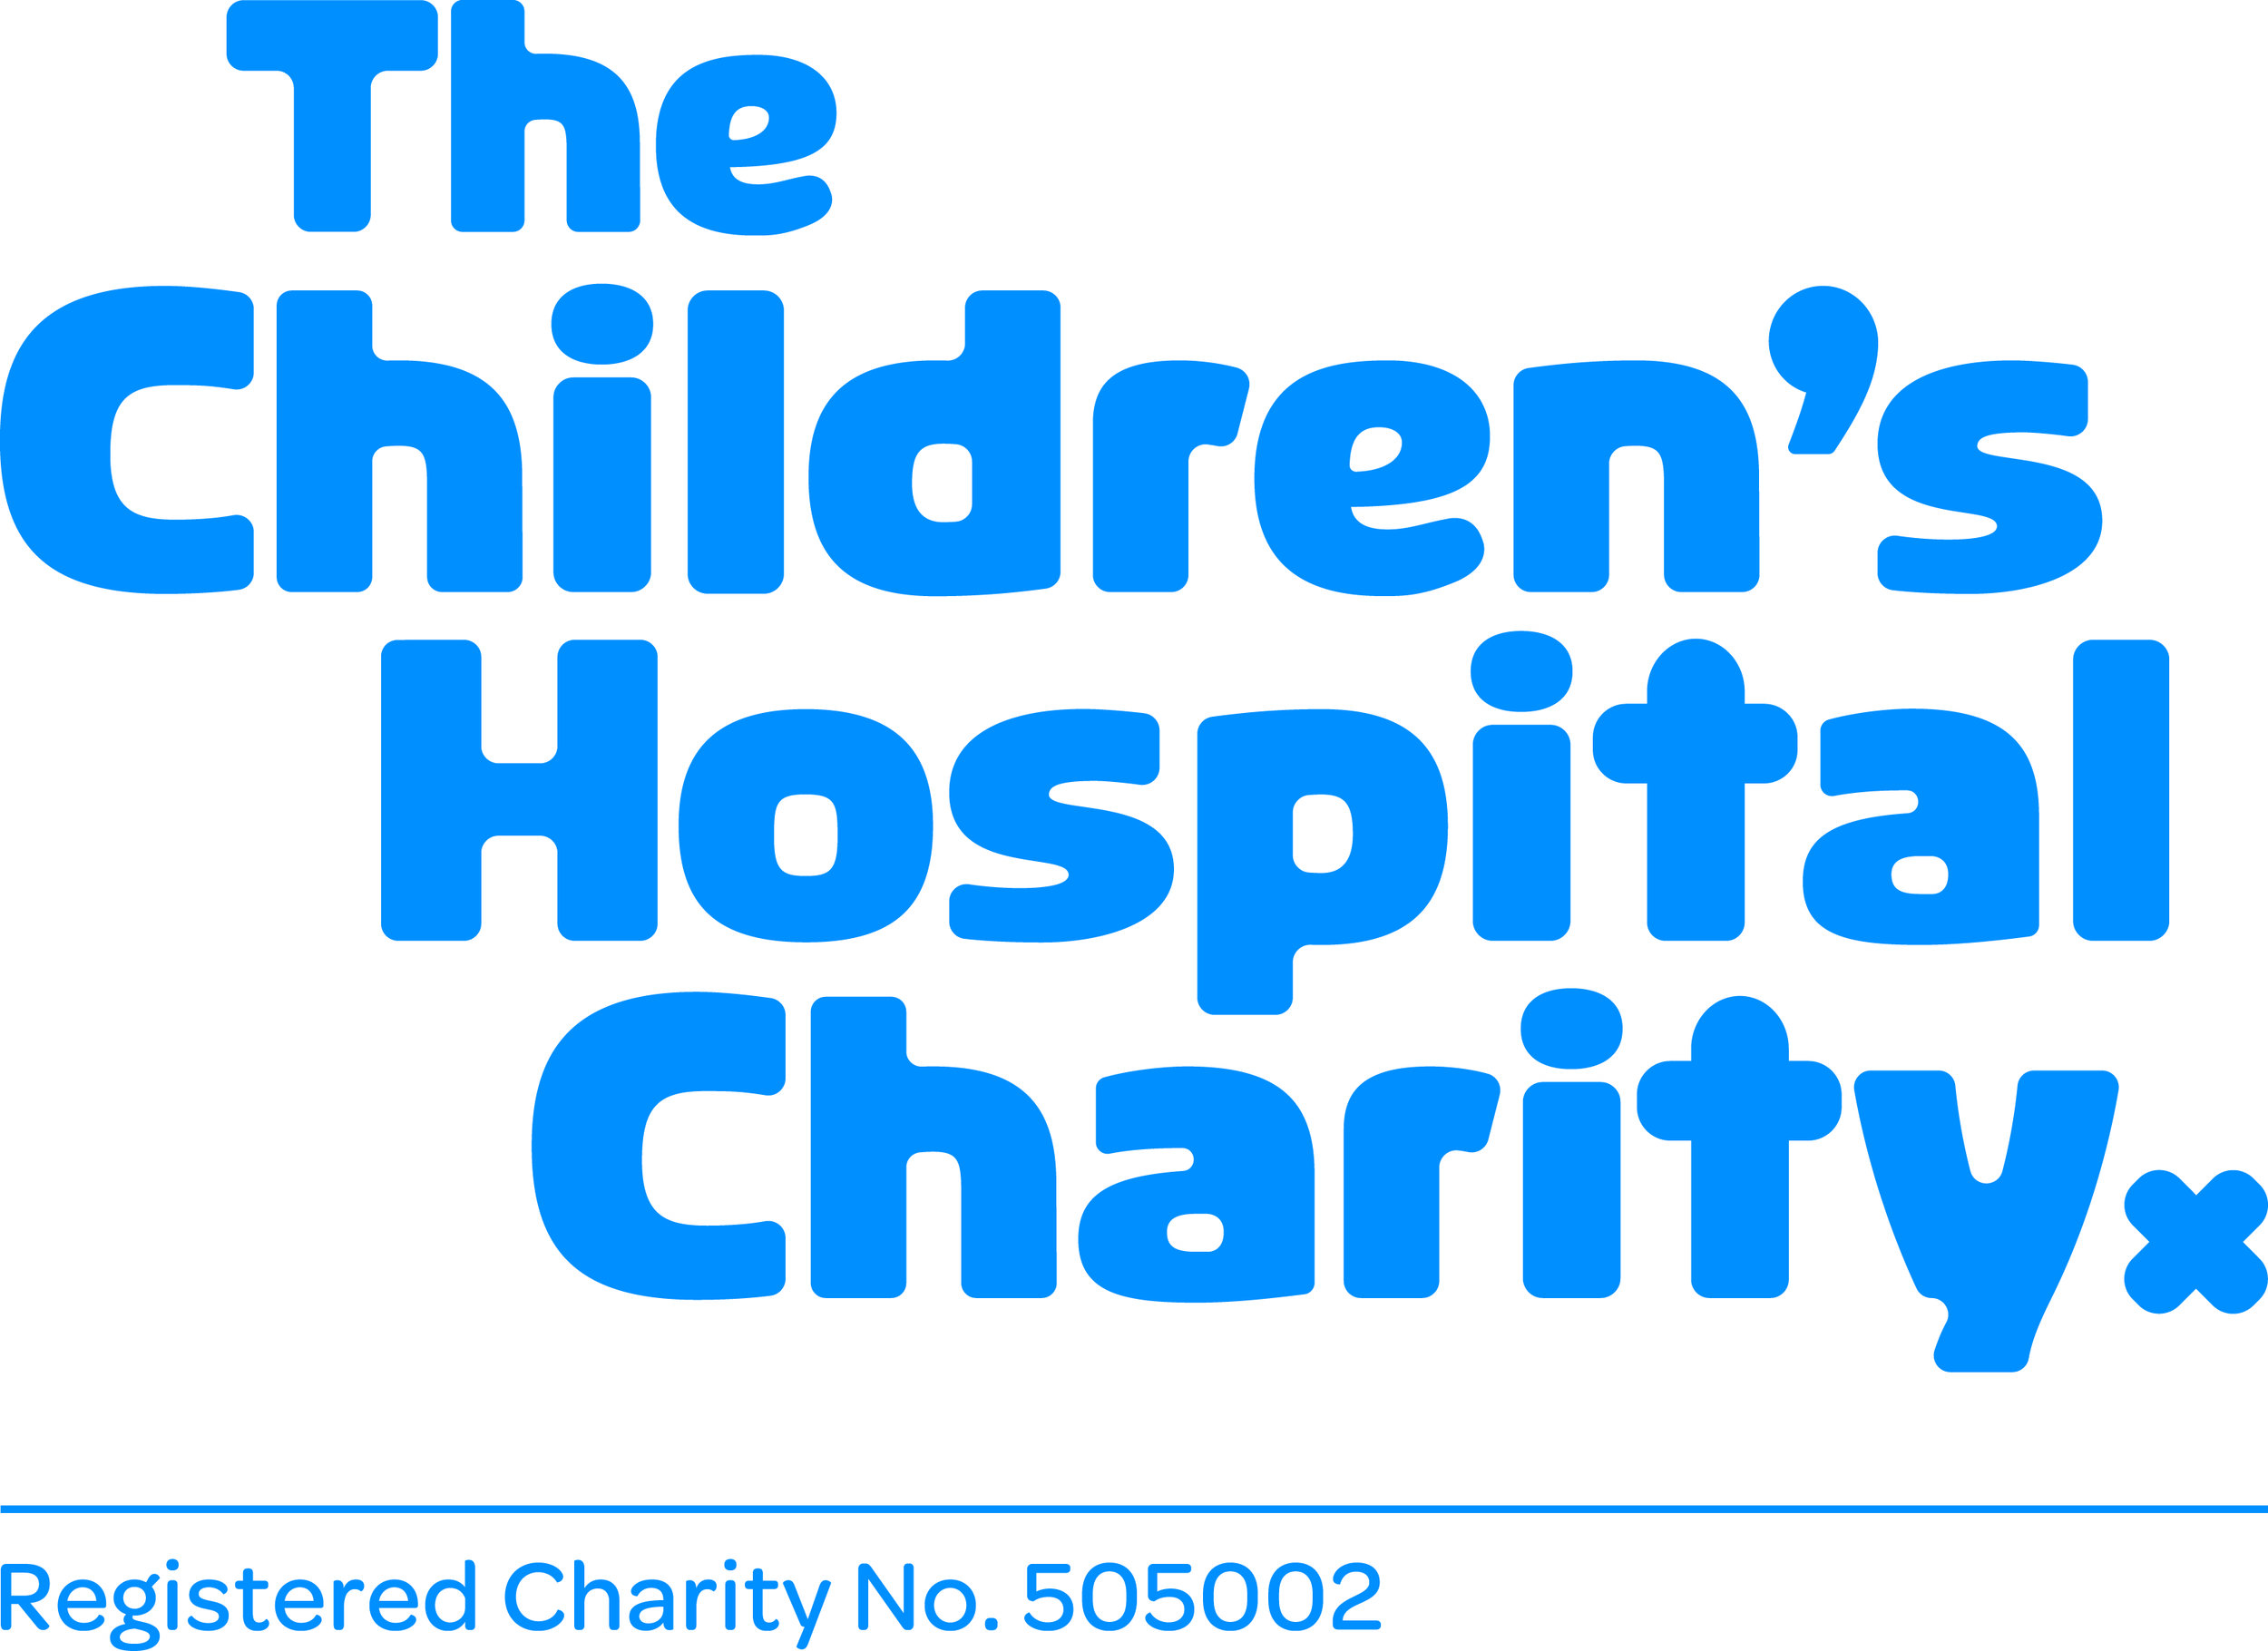 Training Kit Sponsor - www.sheffieldchildrens.nhs.uk